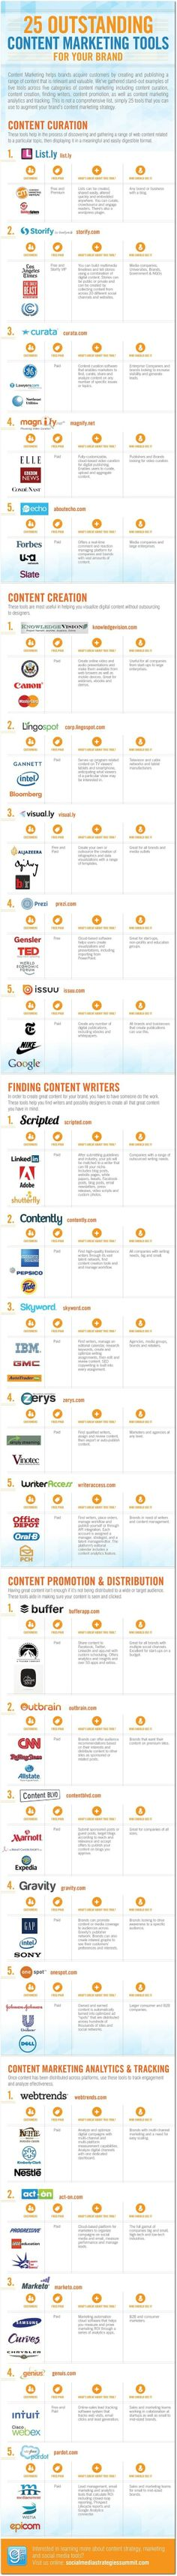 The best content marketing tools | Articles | Home